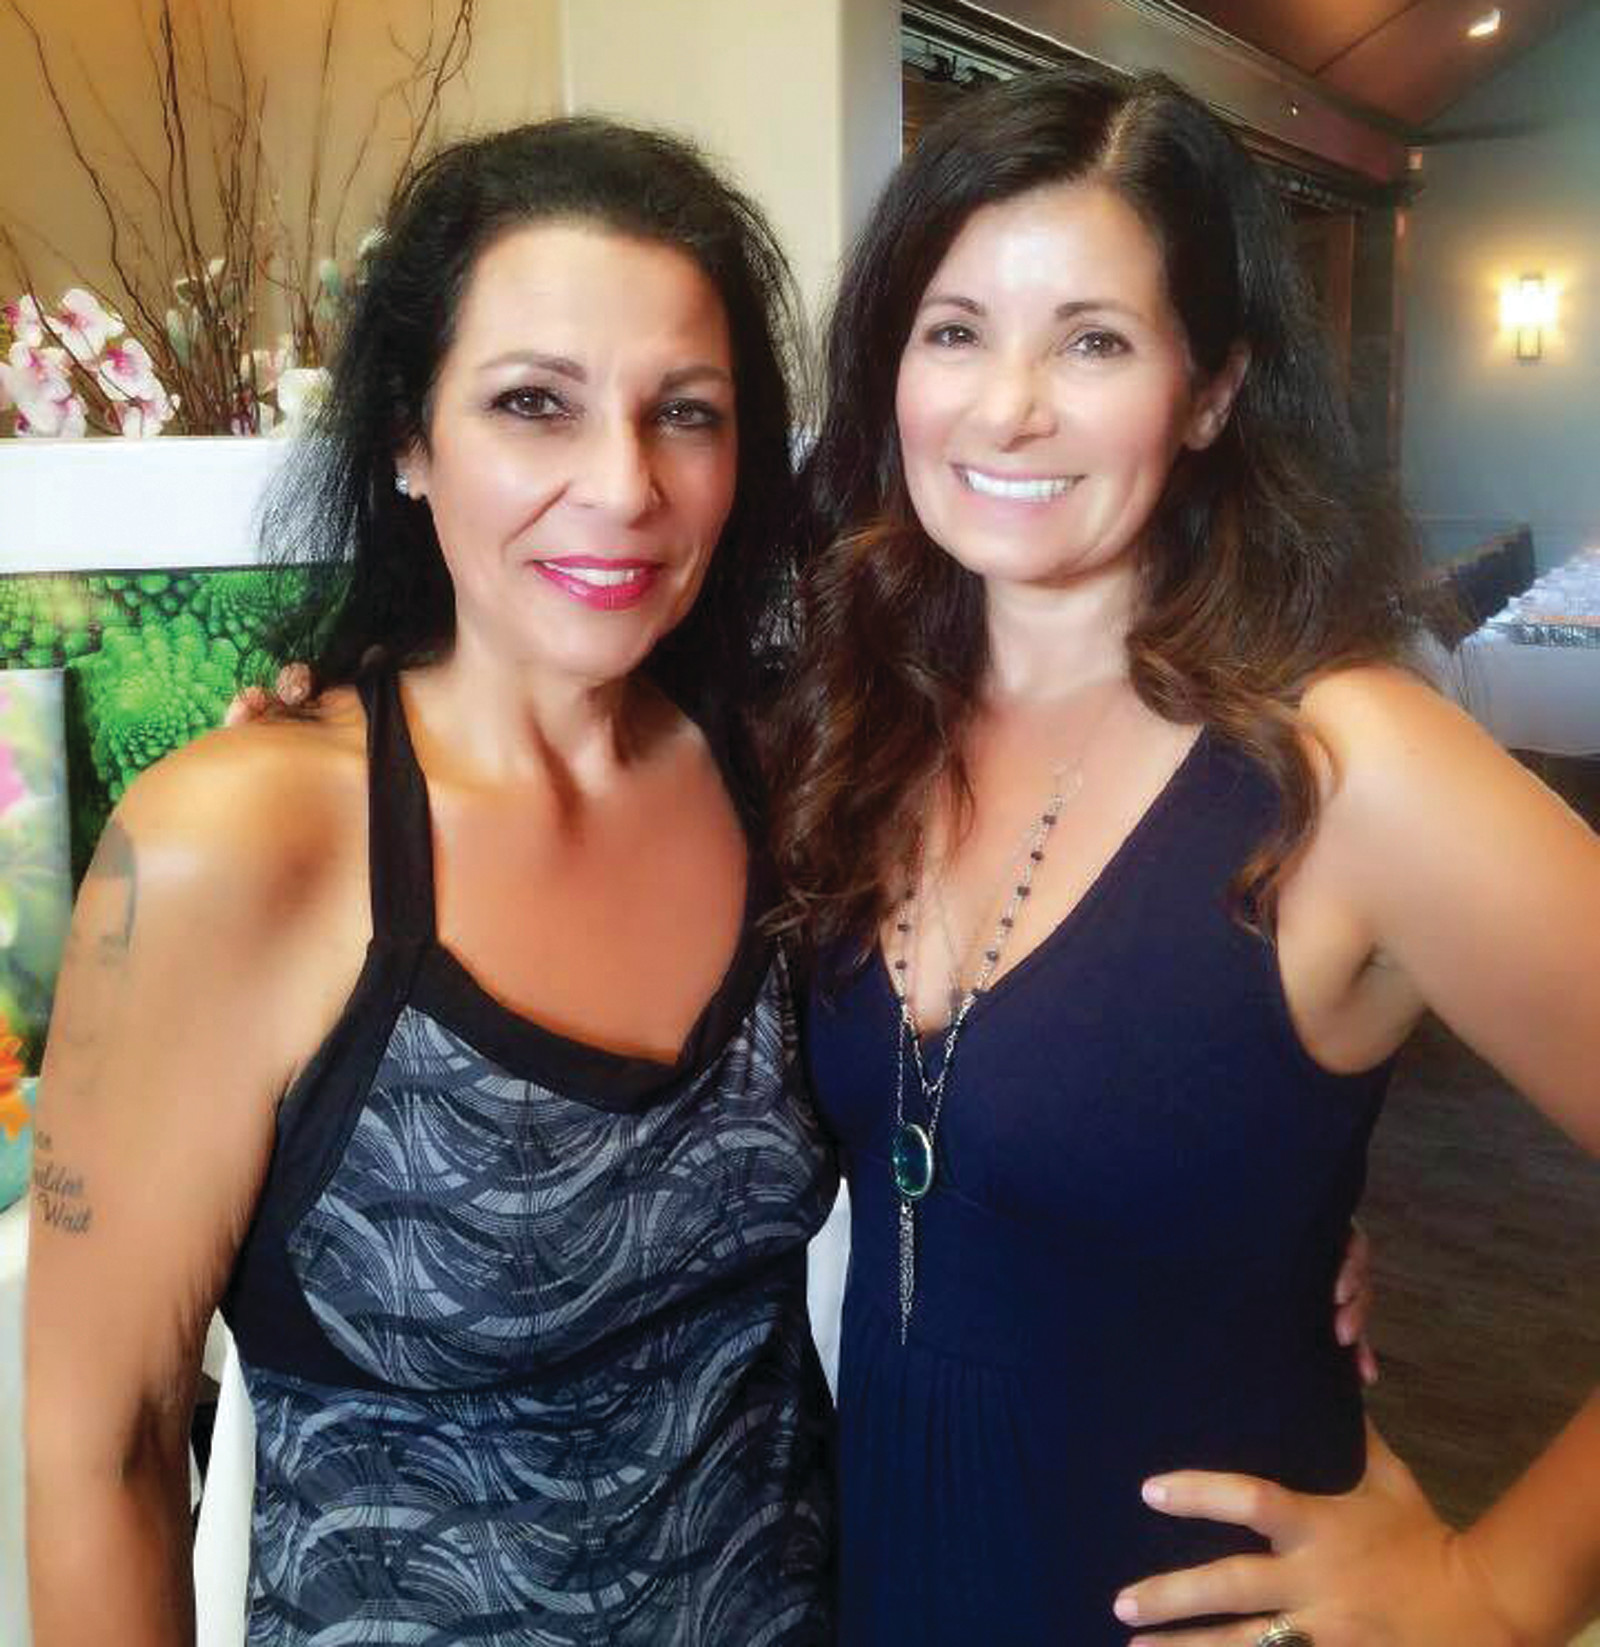 TEAMWORK: Pictured is the Founder and CEO of the Eric Medeiros Memorial Foundation Anna Casador along with Owner of Spain Restaurant Terri Rodriguez.